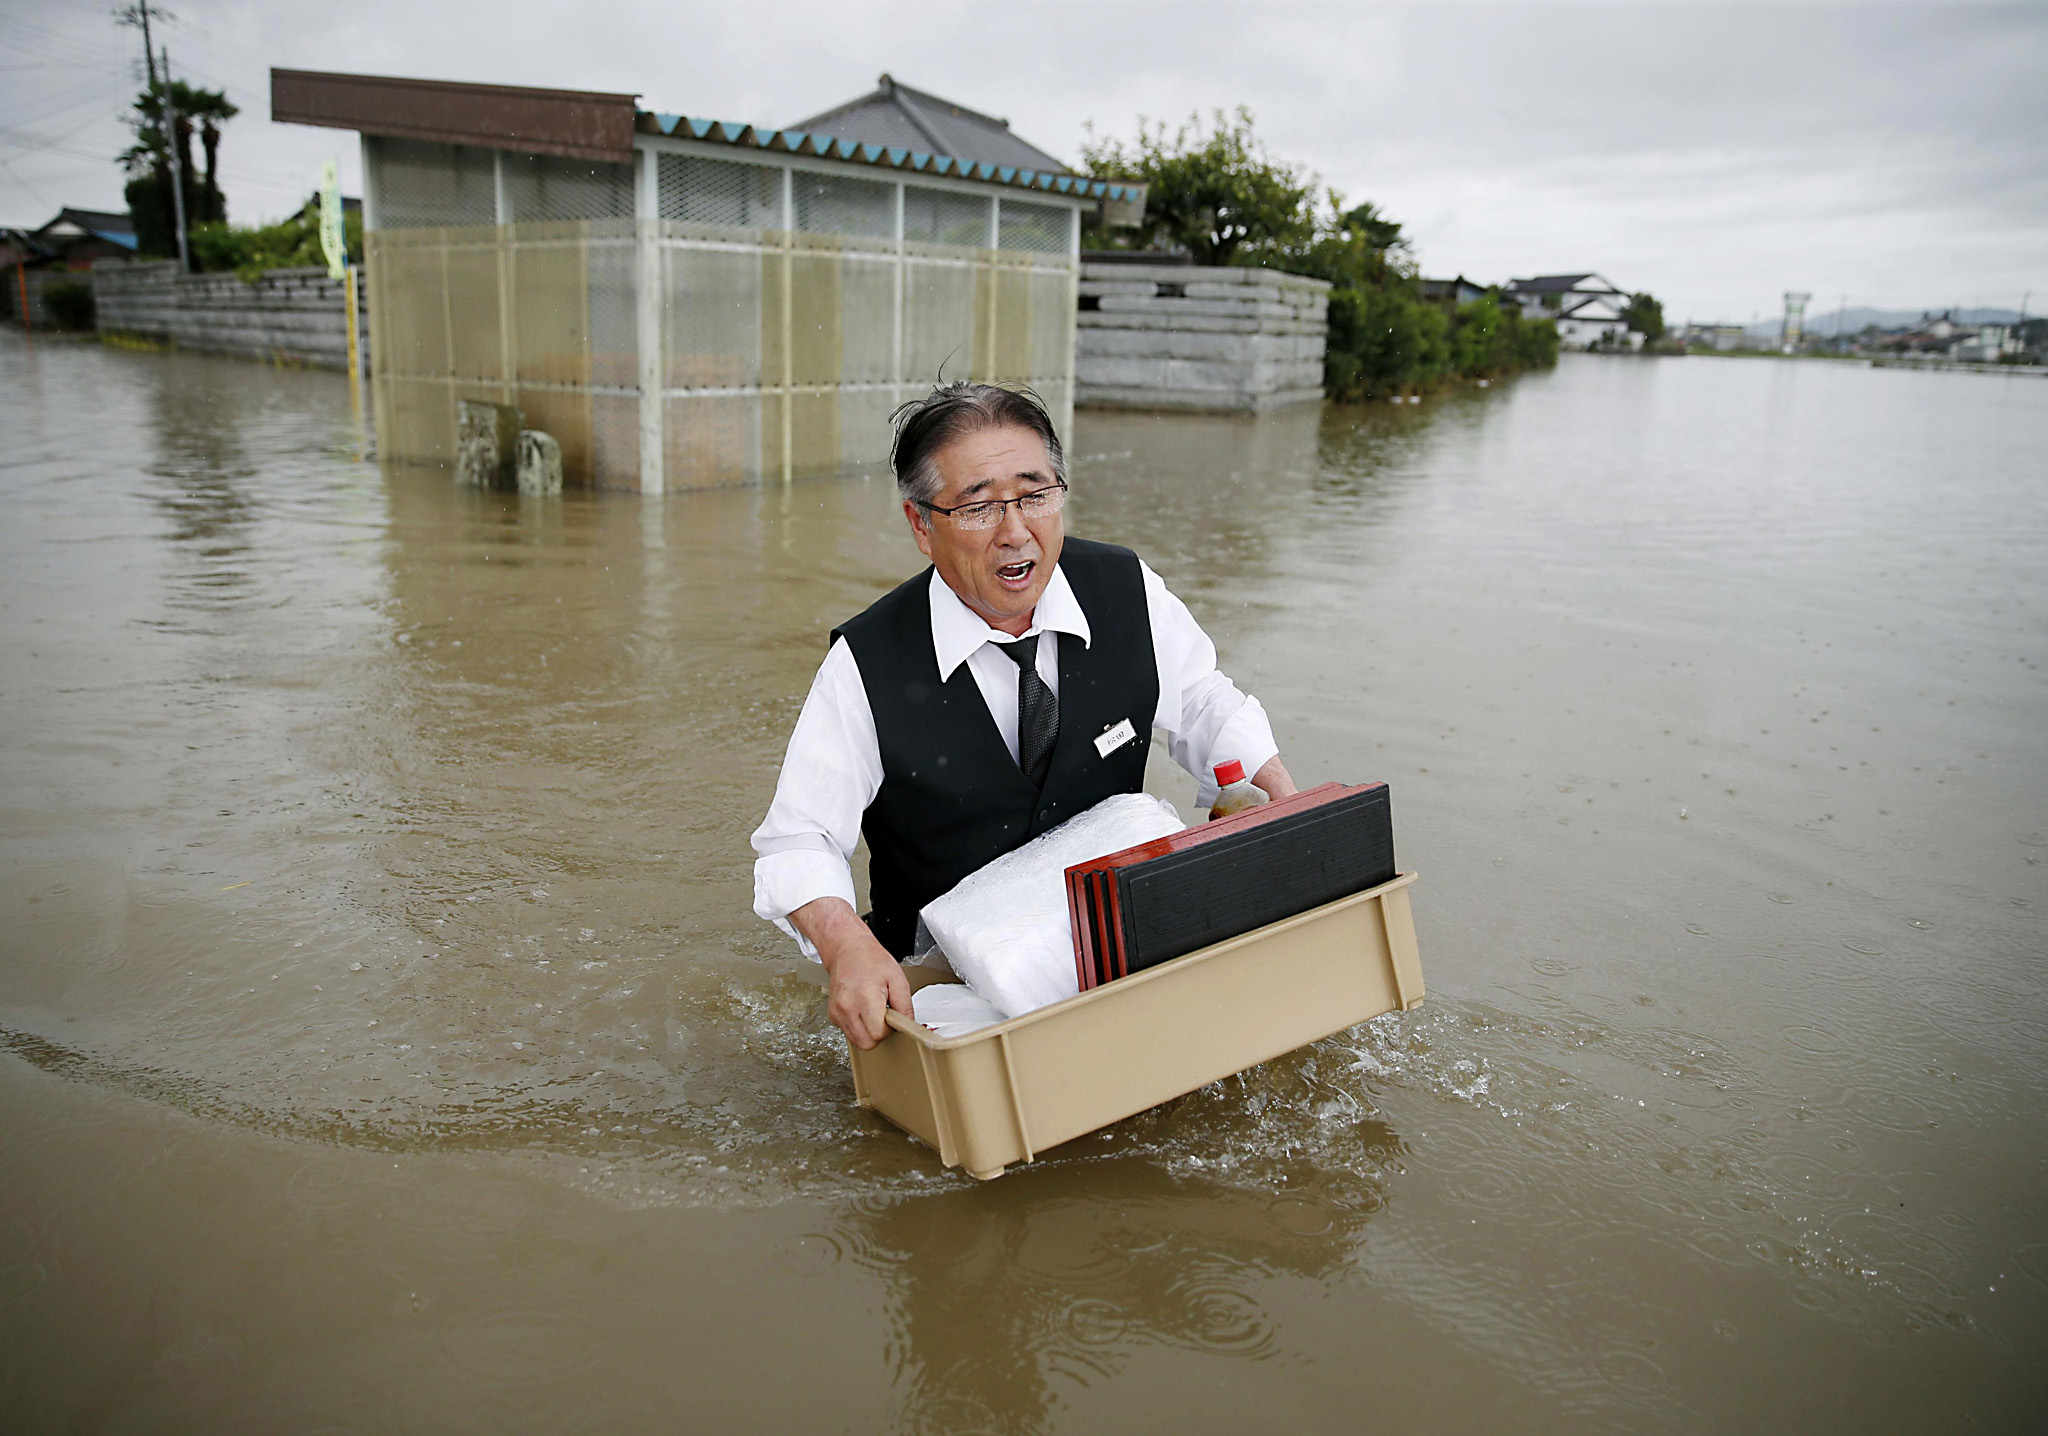 A man carries belonging through a flooded street in Oyama, Tochigi prefecture, northeast of Tokyo Thursday, Sept. 10, 2015. Heavy rain is pummeling Japan for a second straight day, overflowing rivers and causing landslides and localized flooding in the eastern part of the country. (Kyodo News via AP) JAPAN OUT, MANDATORY CREDIT